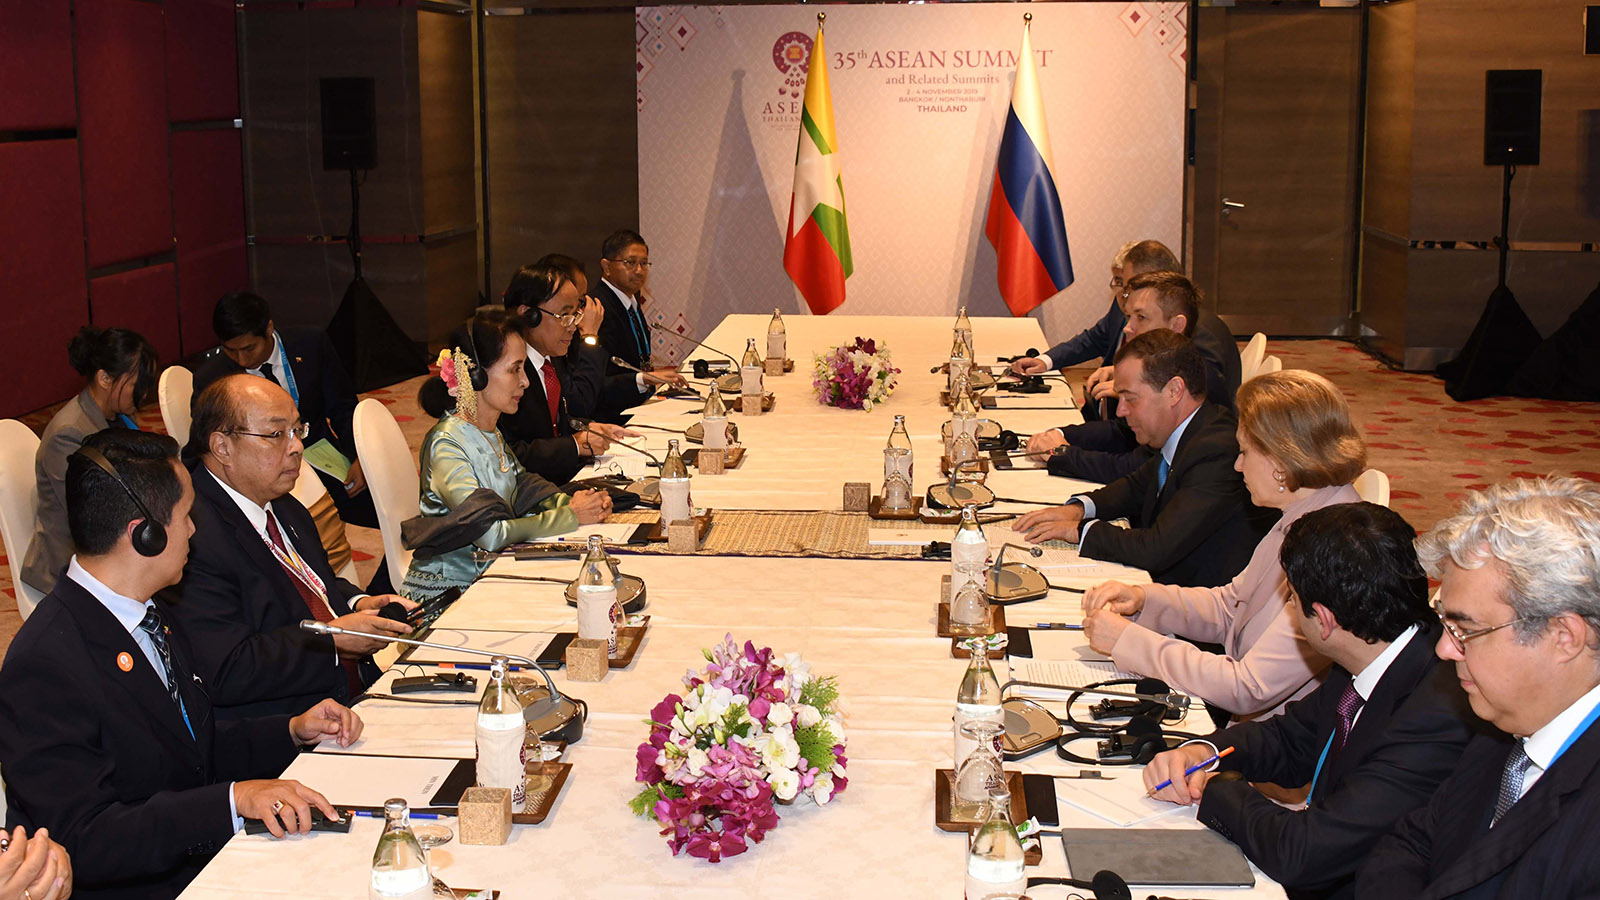 State Counsellor Daw Aung San Suu Kyi holds talks with Prime Minister of the Russian Federation Mr Dmitry Medvedev in Bangkok, Thailand.Photo: MNA